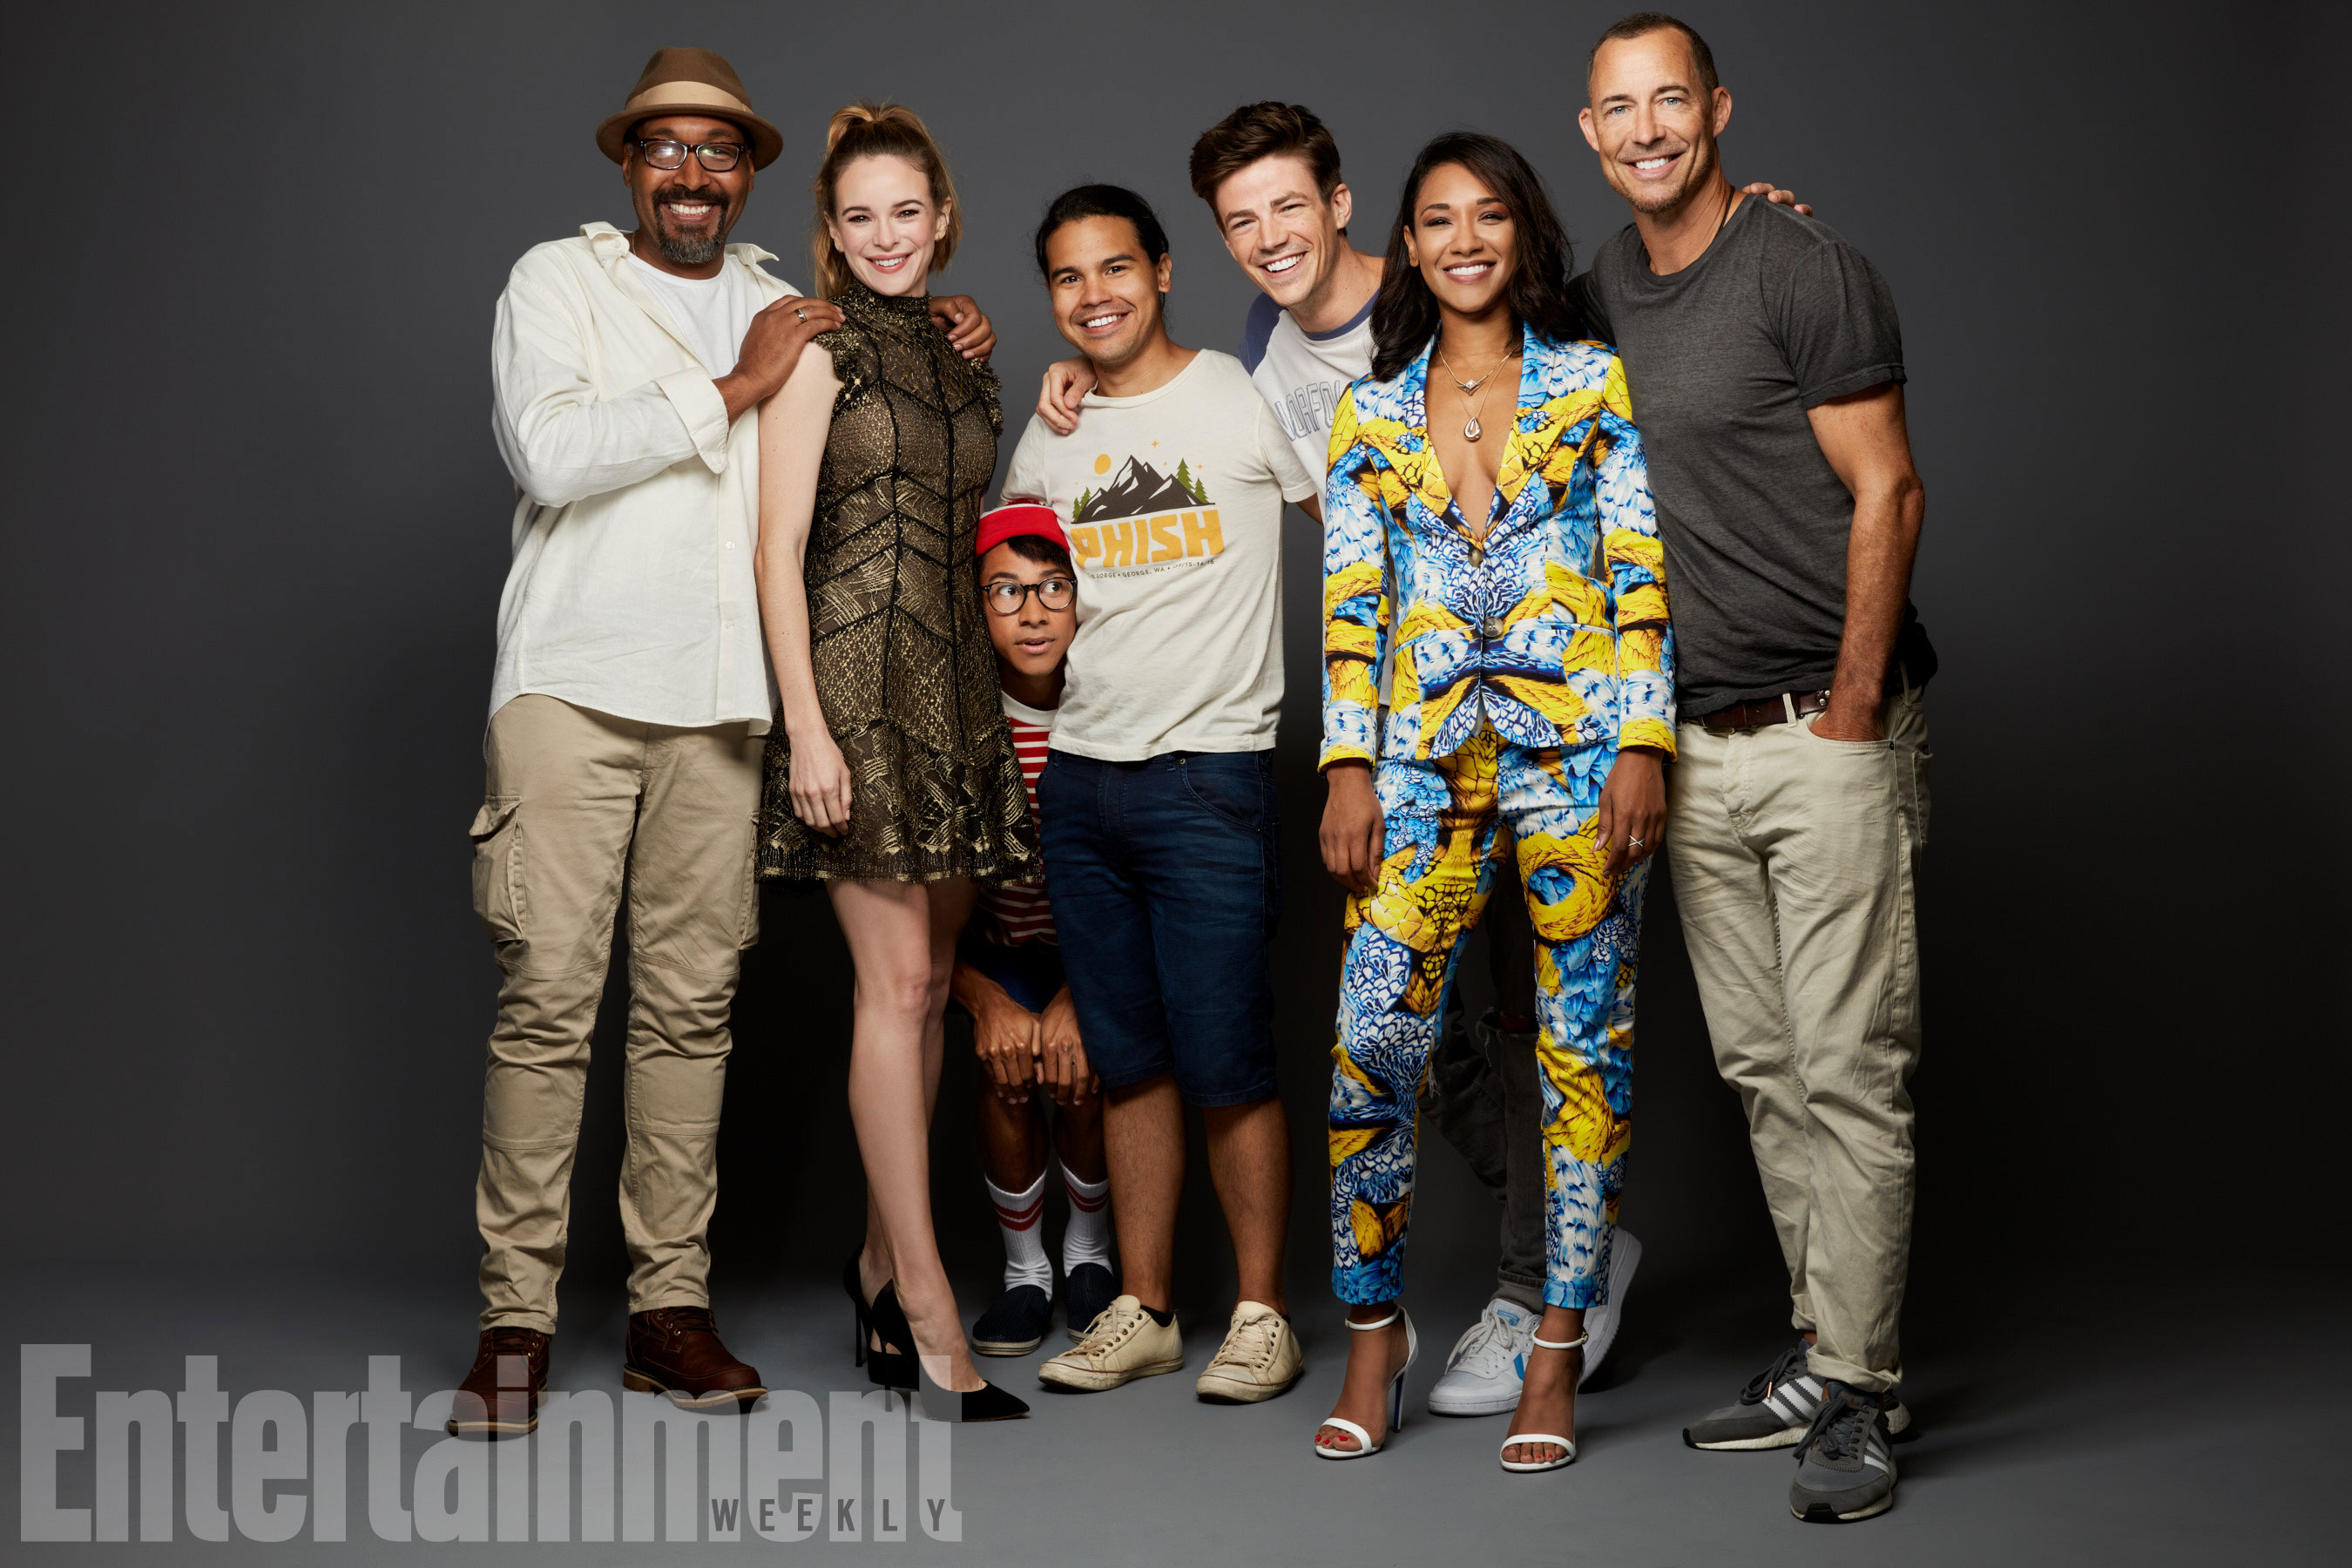 Jesse L. Martin, Danielle Panabaker, Keiynan Lonsdale, Carlos Valdes, Grant Gustin, Candice Patton és Tom Cavanagh (The Flash)